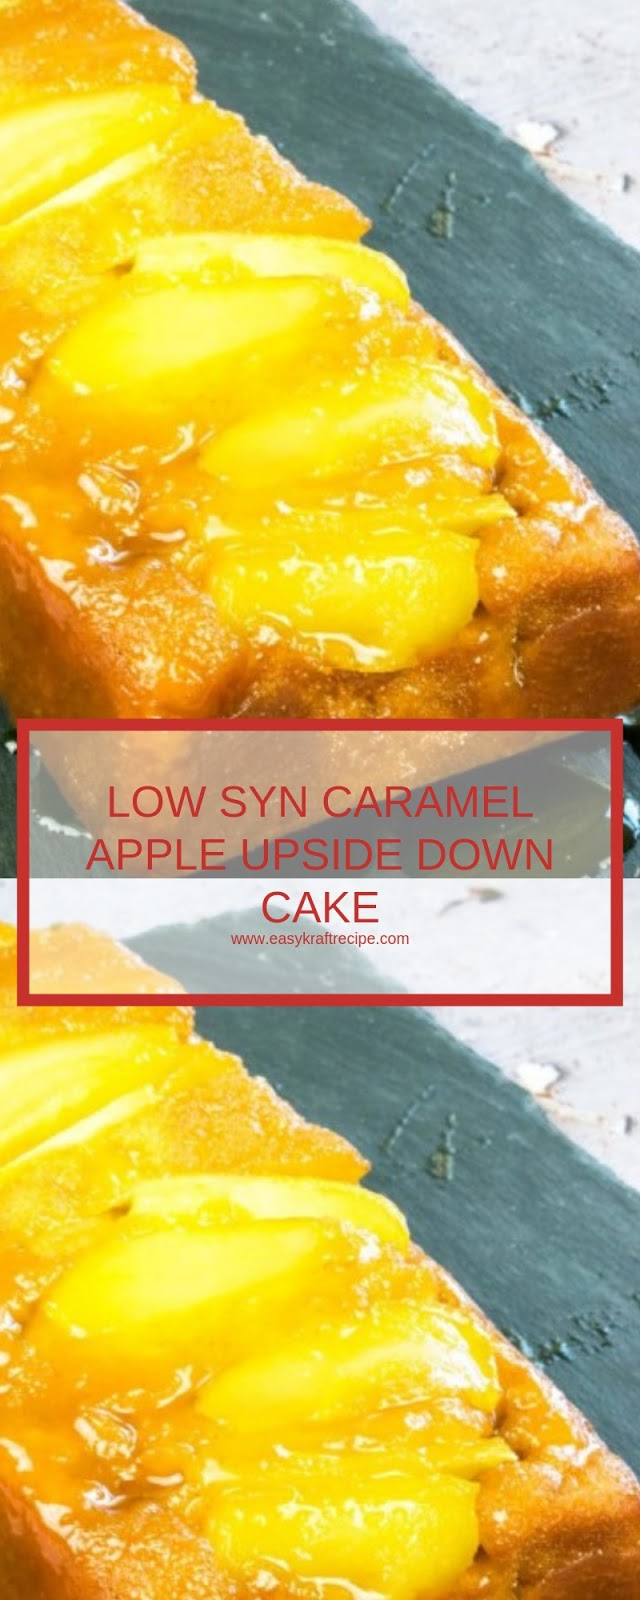 LOW SYN CARAMEL APPLE UPSIDE DOWN CAKE